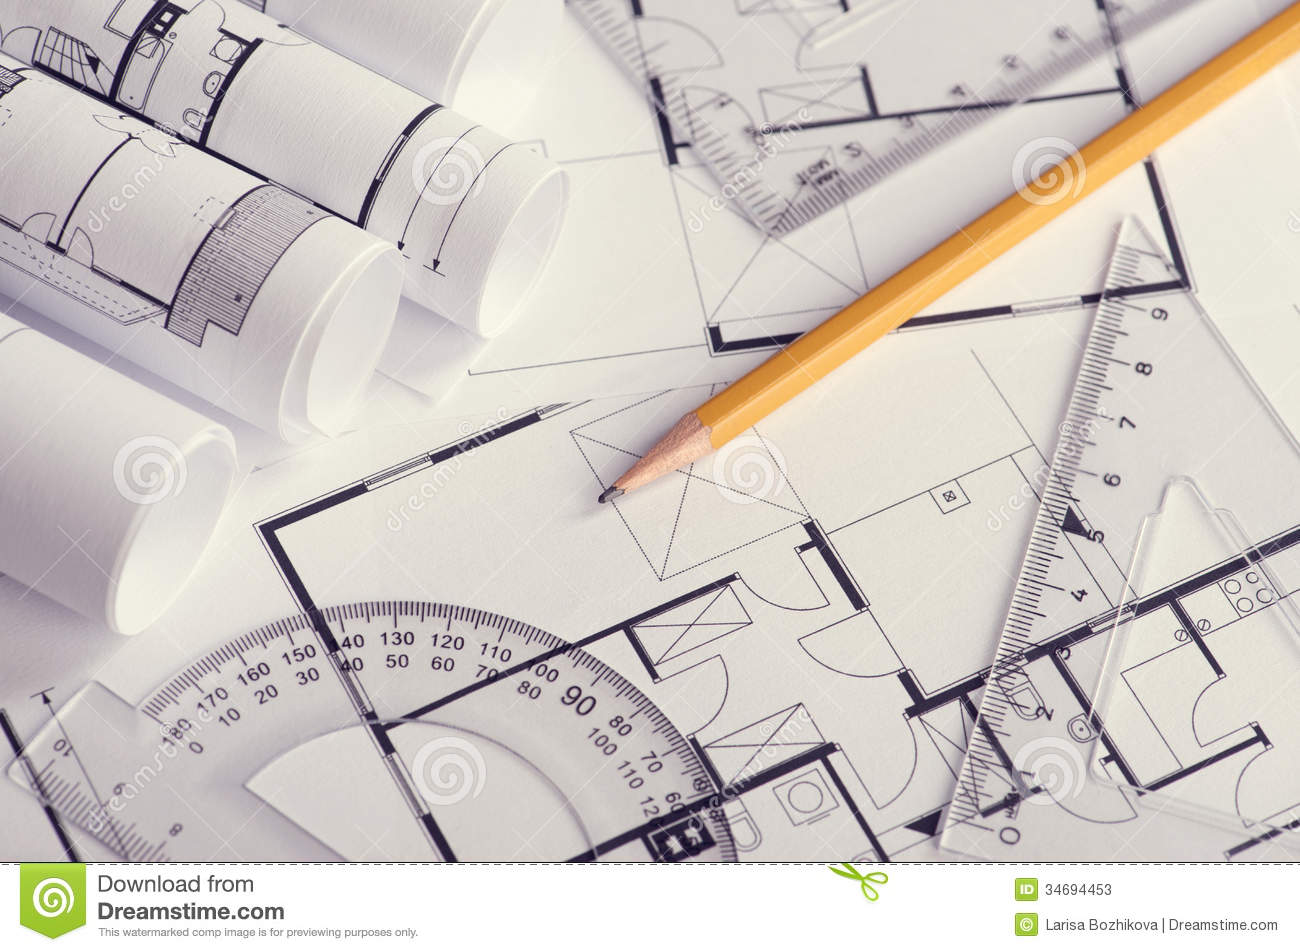 Housing Project Stock Photos - Image: 34694453 - ^